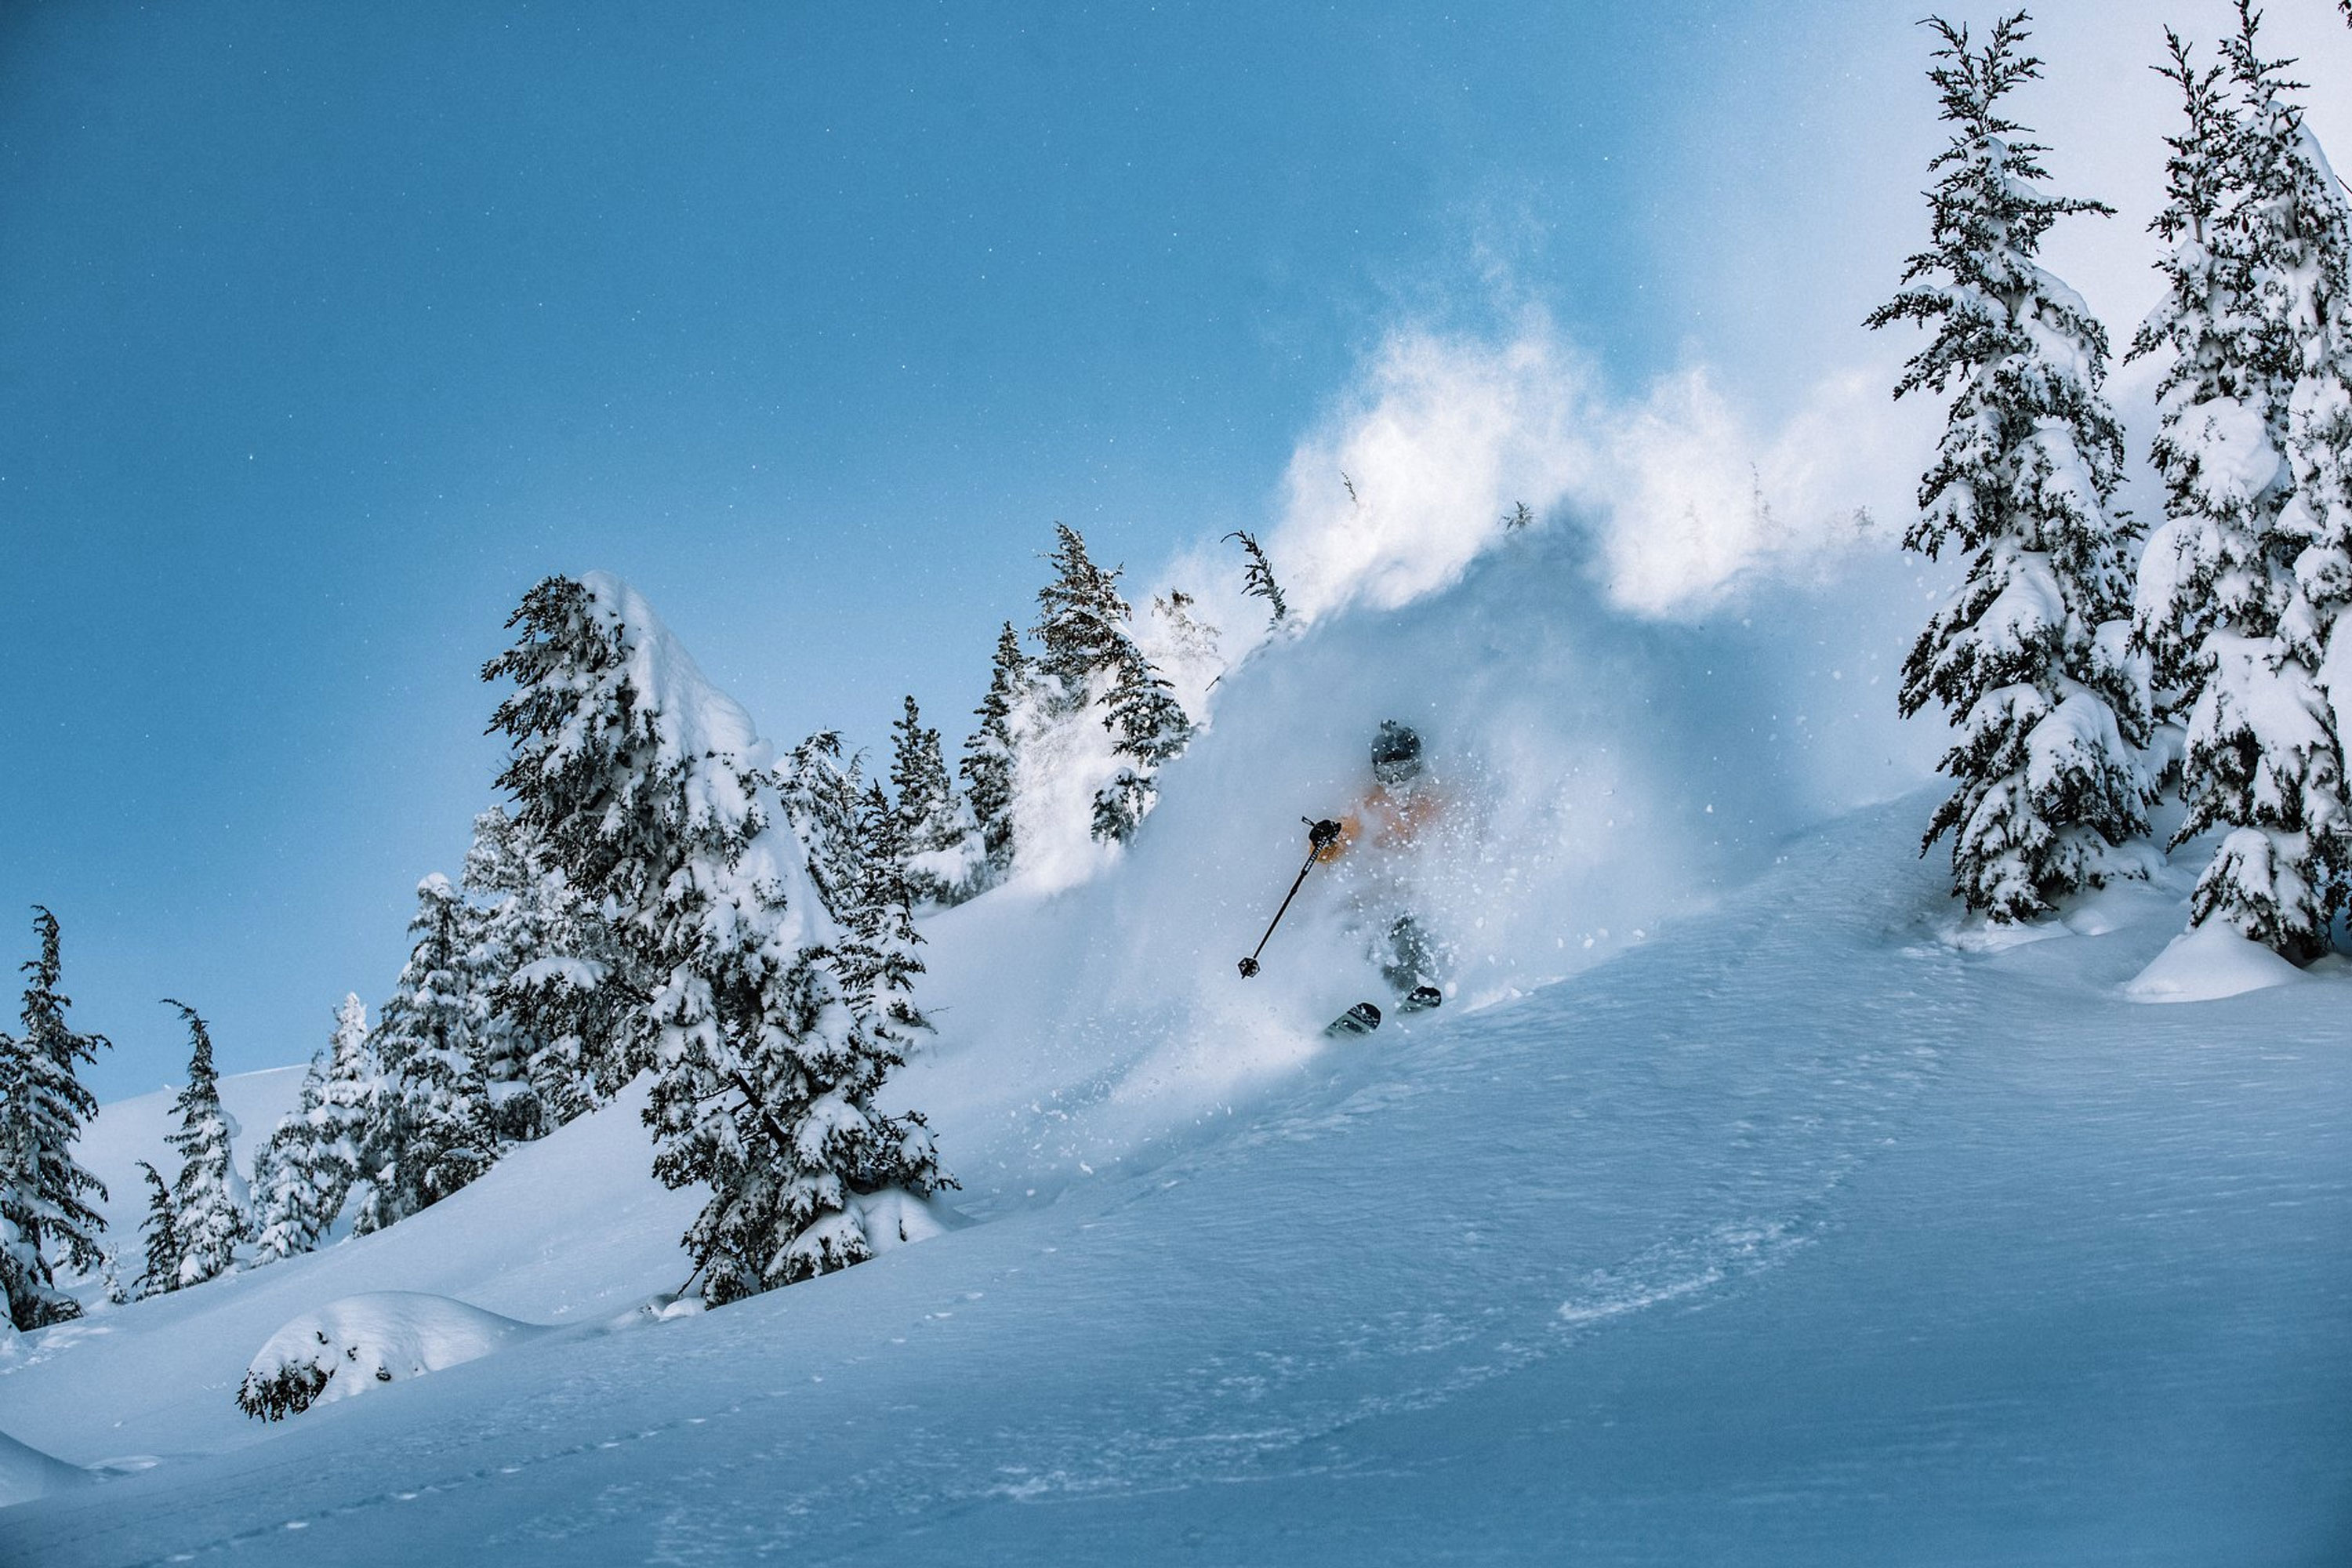 SKI Mammoth mountain USA ski holiday offer April 2019